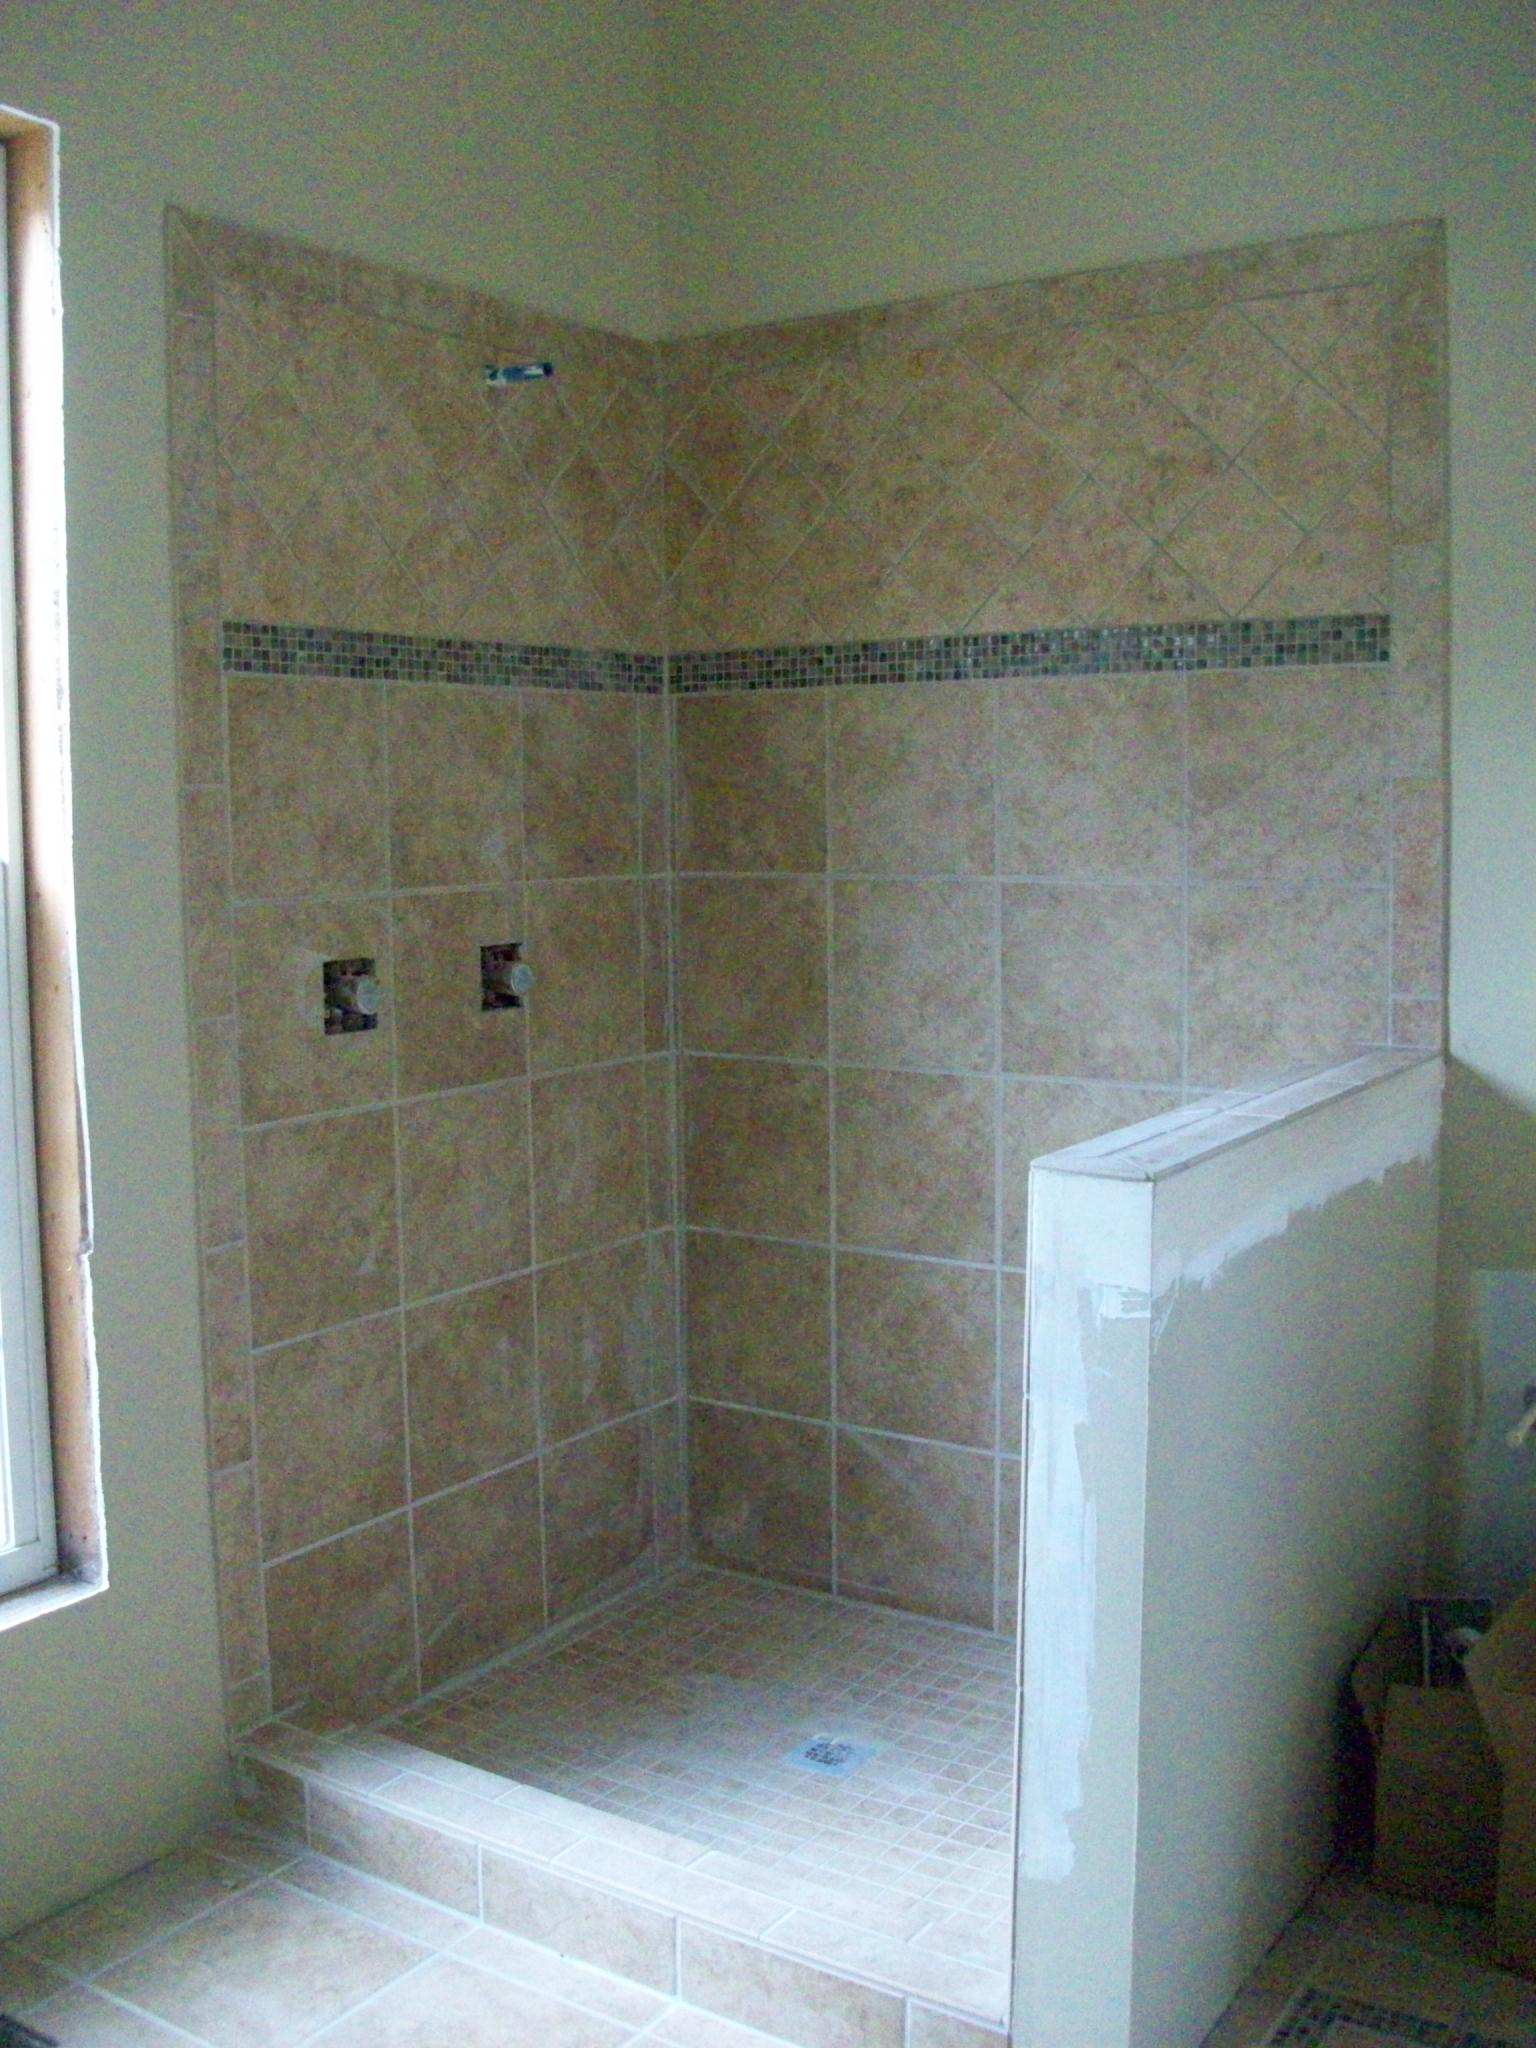 No Door Shower Building With Small Tiles Floor And Large Ceramic Tiled  Shower Wall